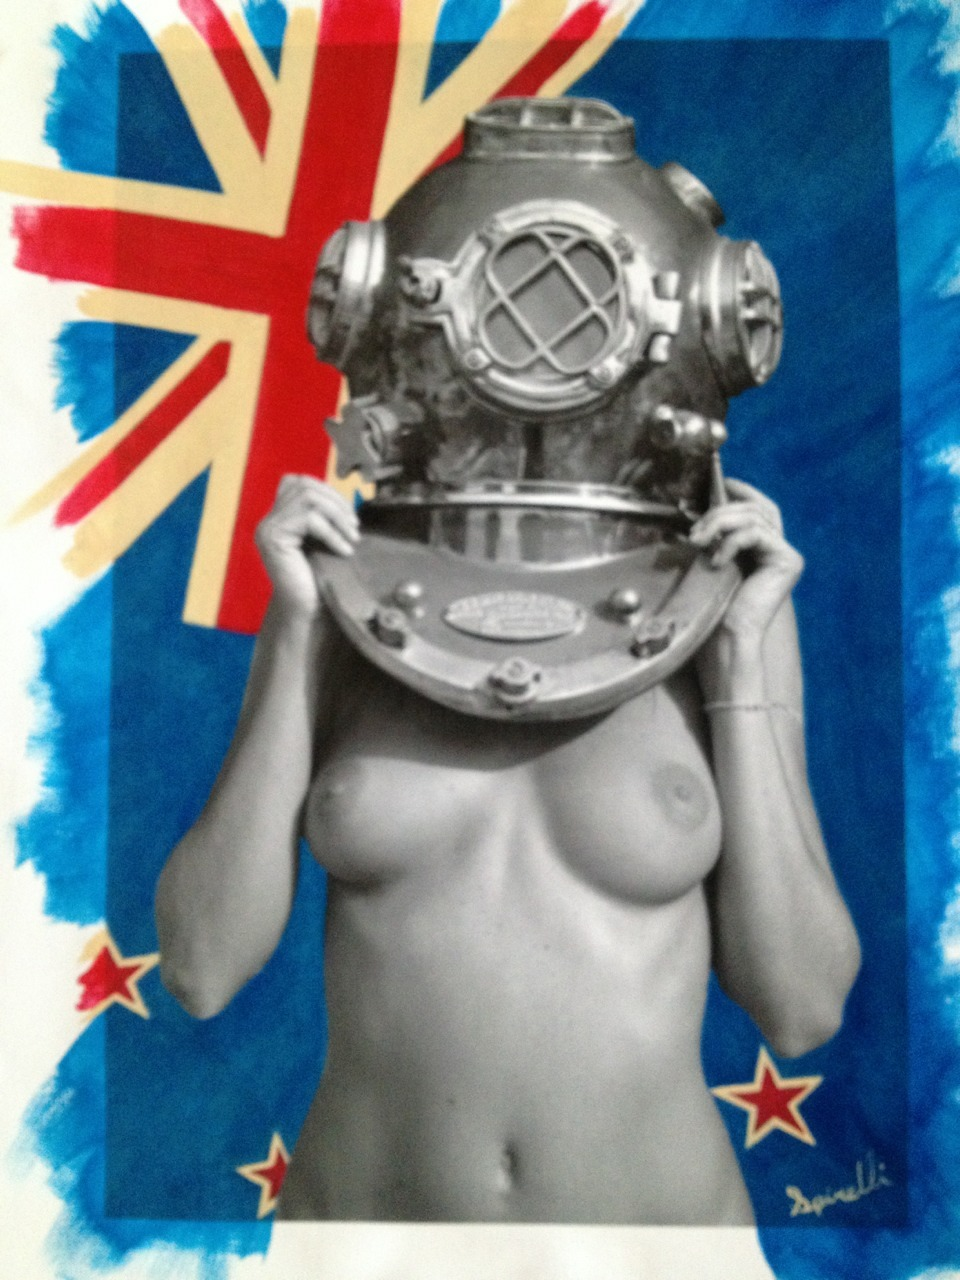 Another request from Shanghai and on its way to The SPiN Galleries in China. Diver UP! Kiwi (New Zealand). Photocanvas mixed with Acrylic. ©Victor Spinelli